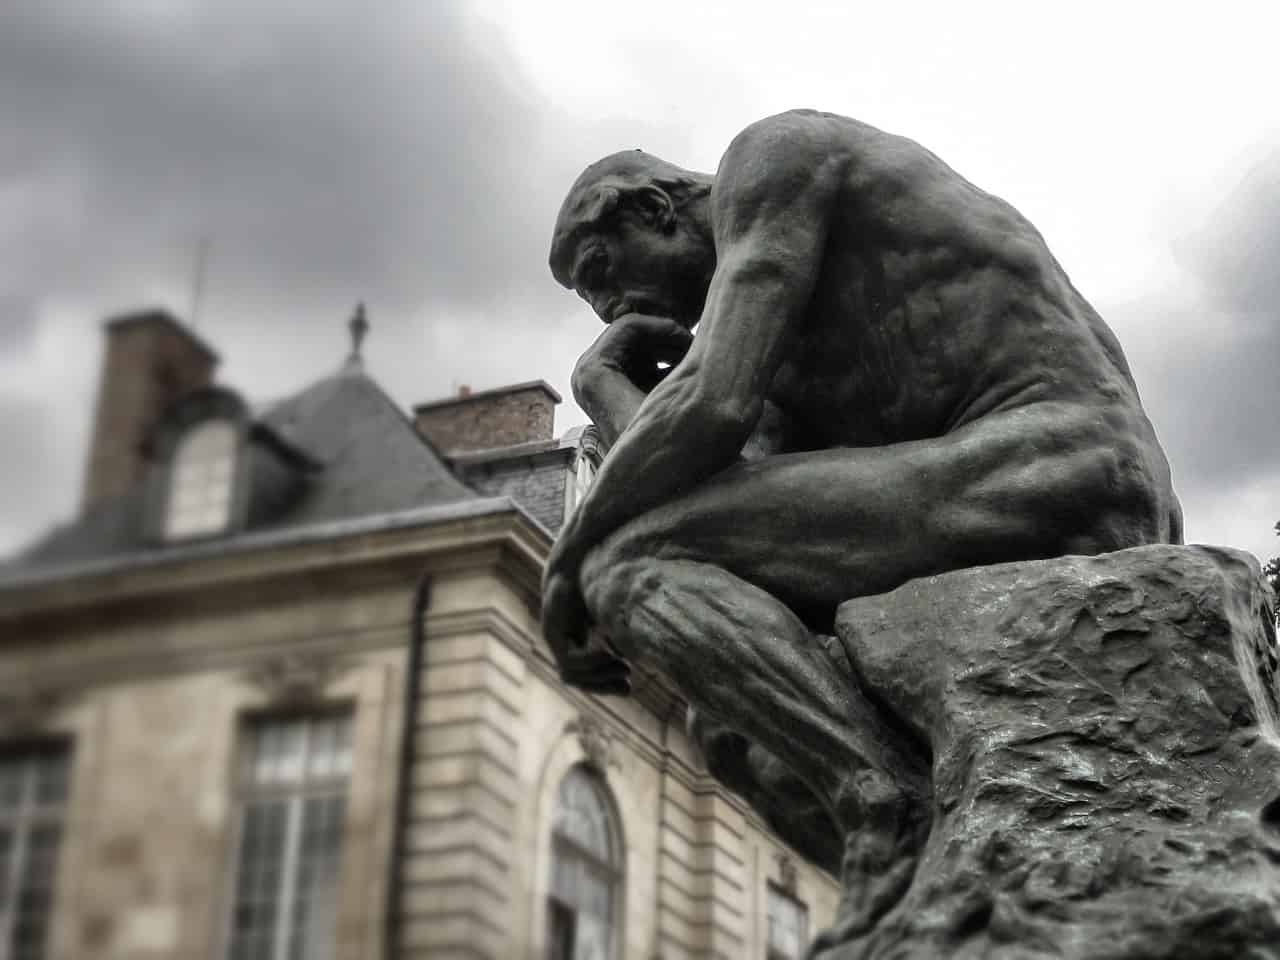 The Thinker, Art facts